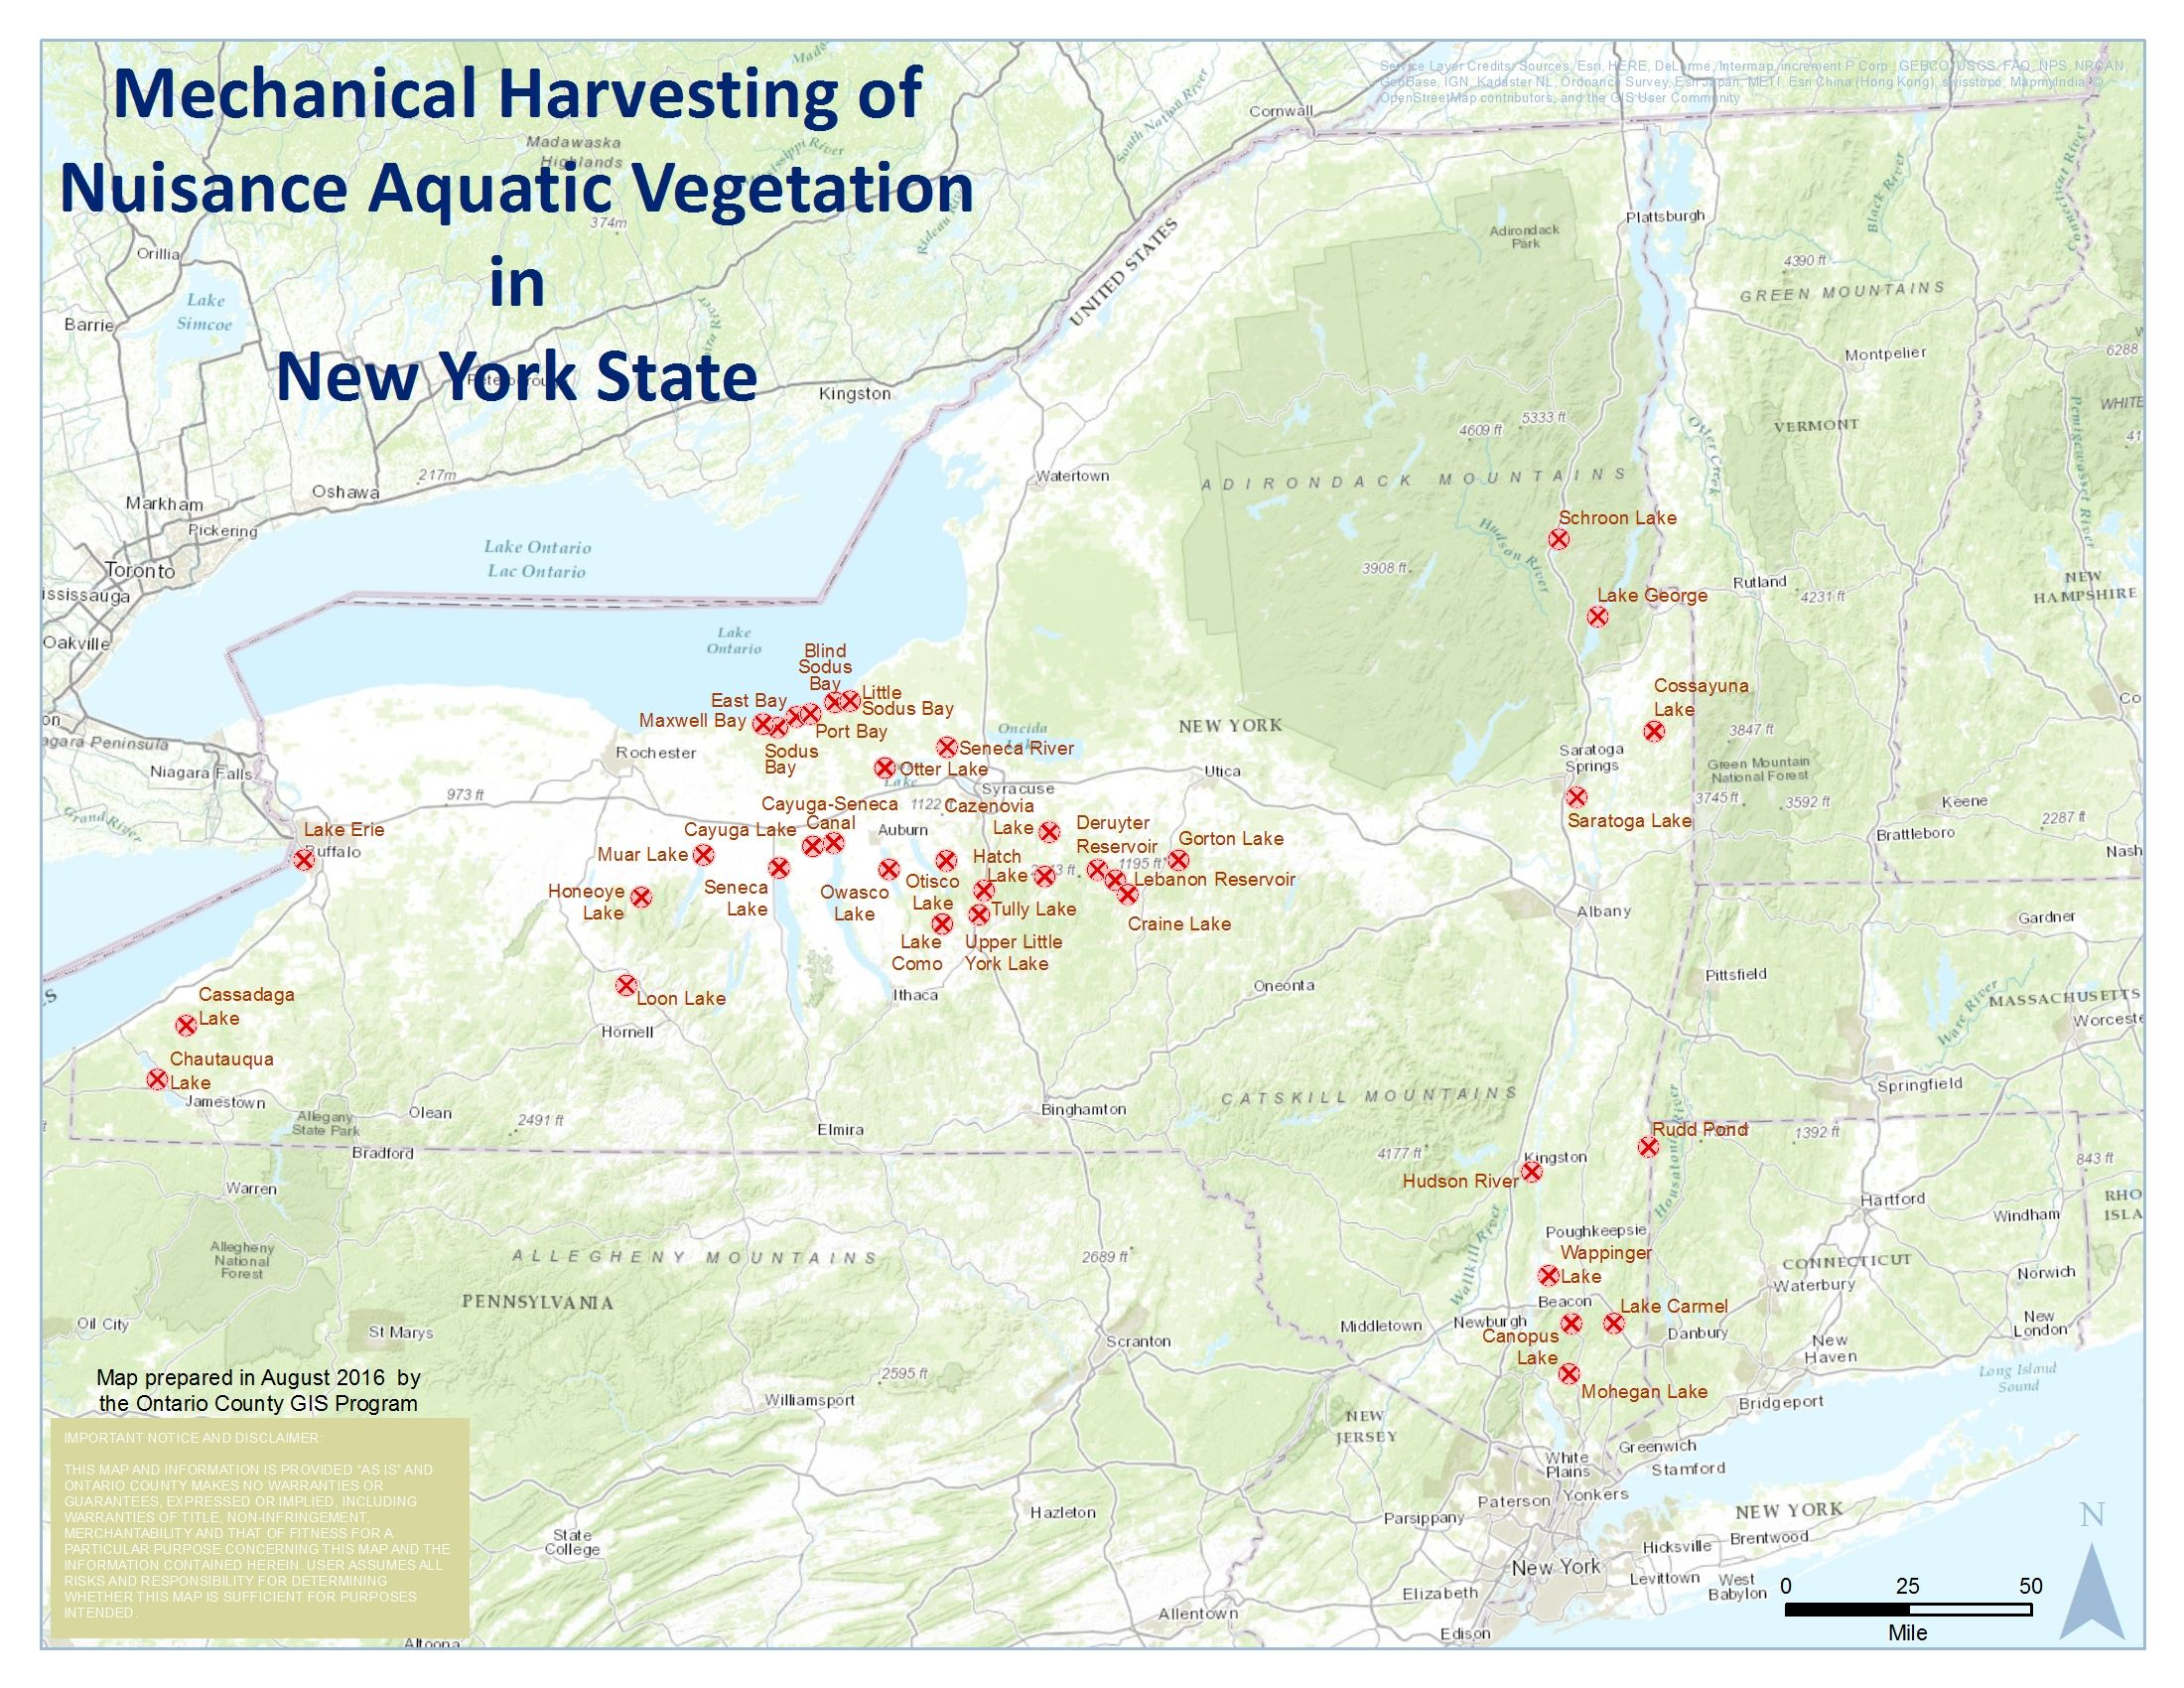 Aquatic Vegetation Harvesting in New York State Labeled